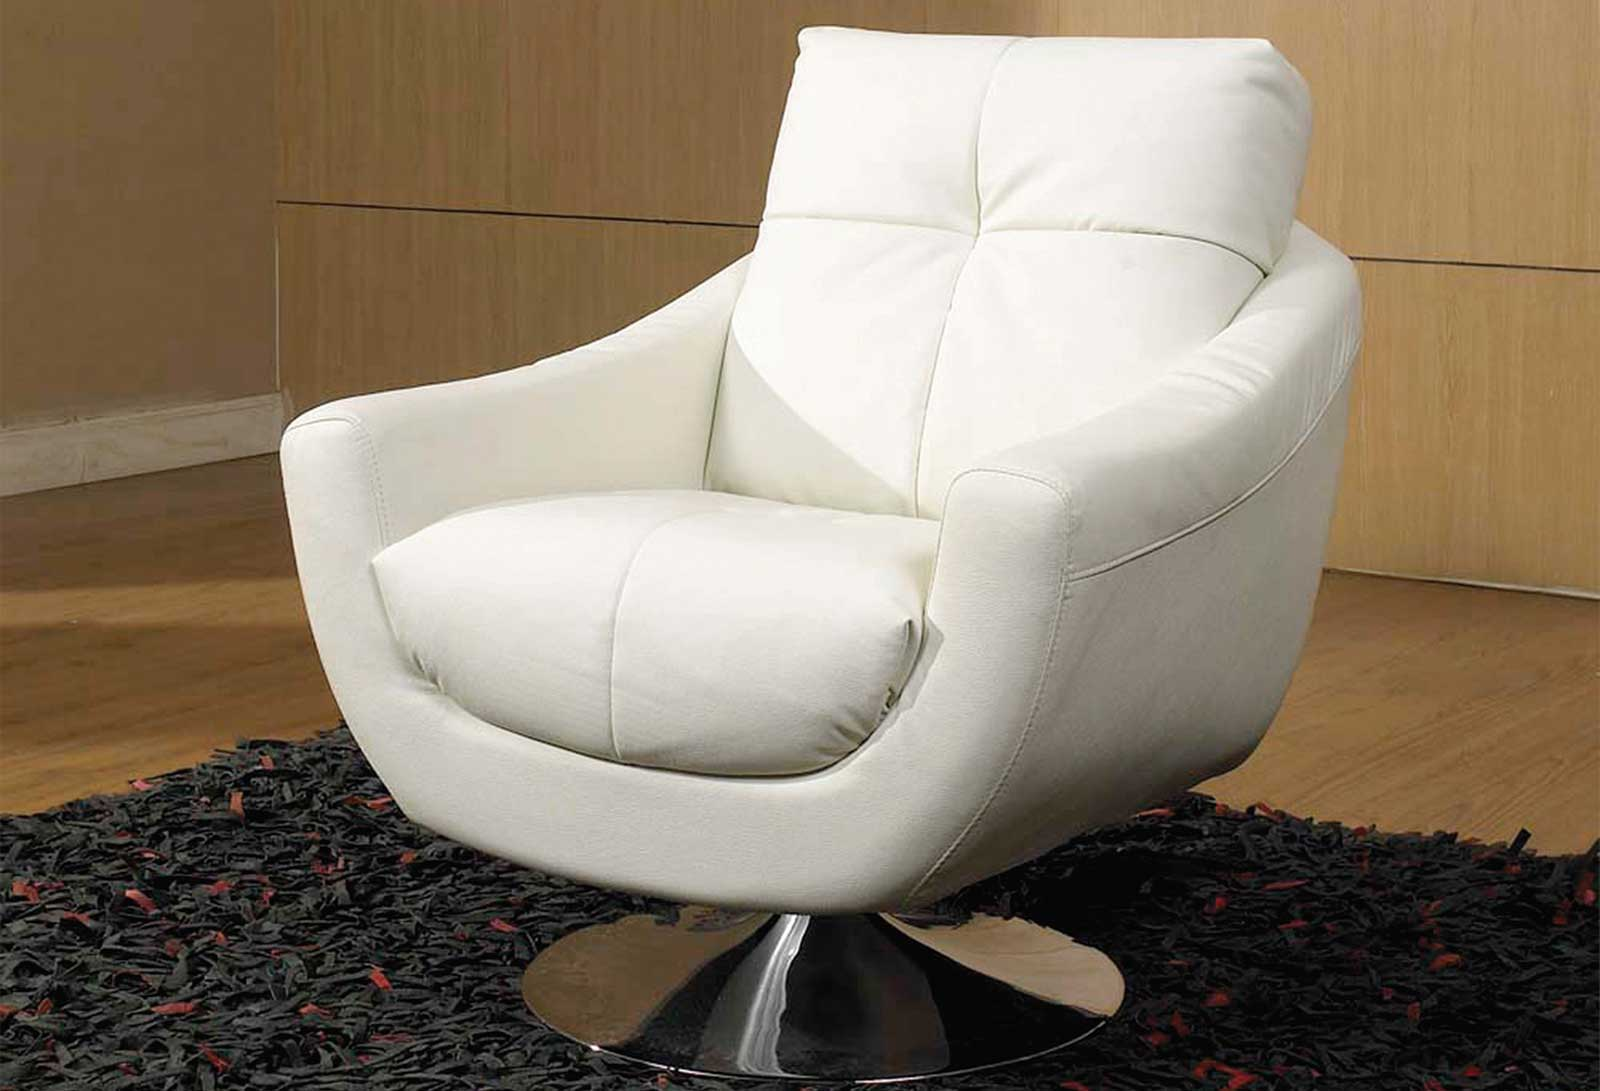 Danae Modern Stylish White Leather Chairs